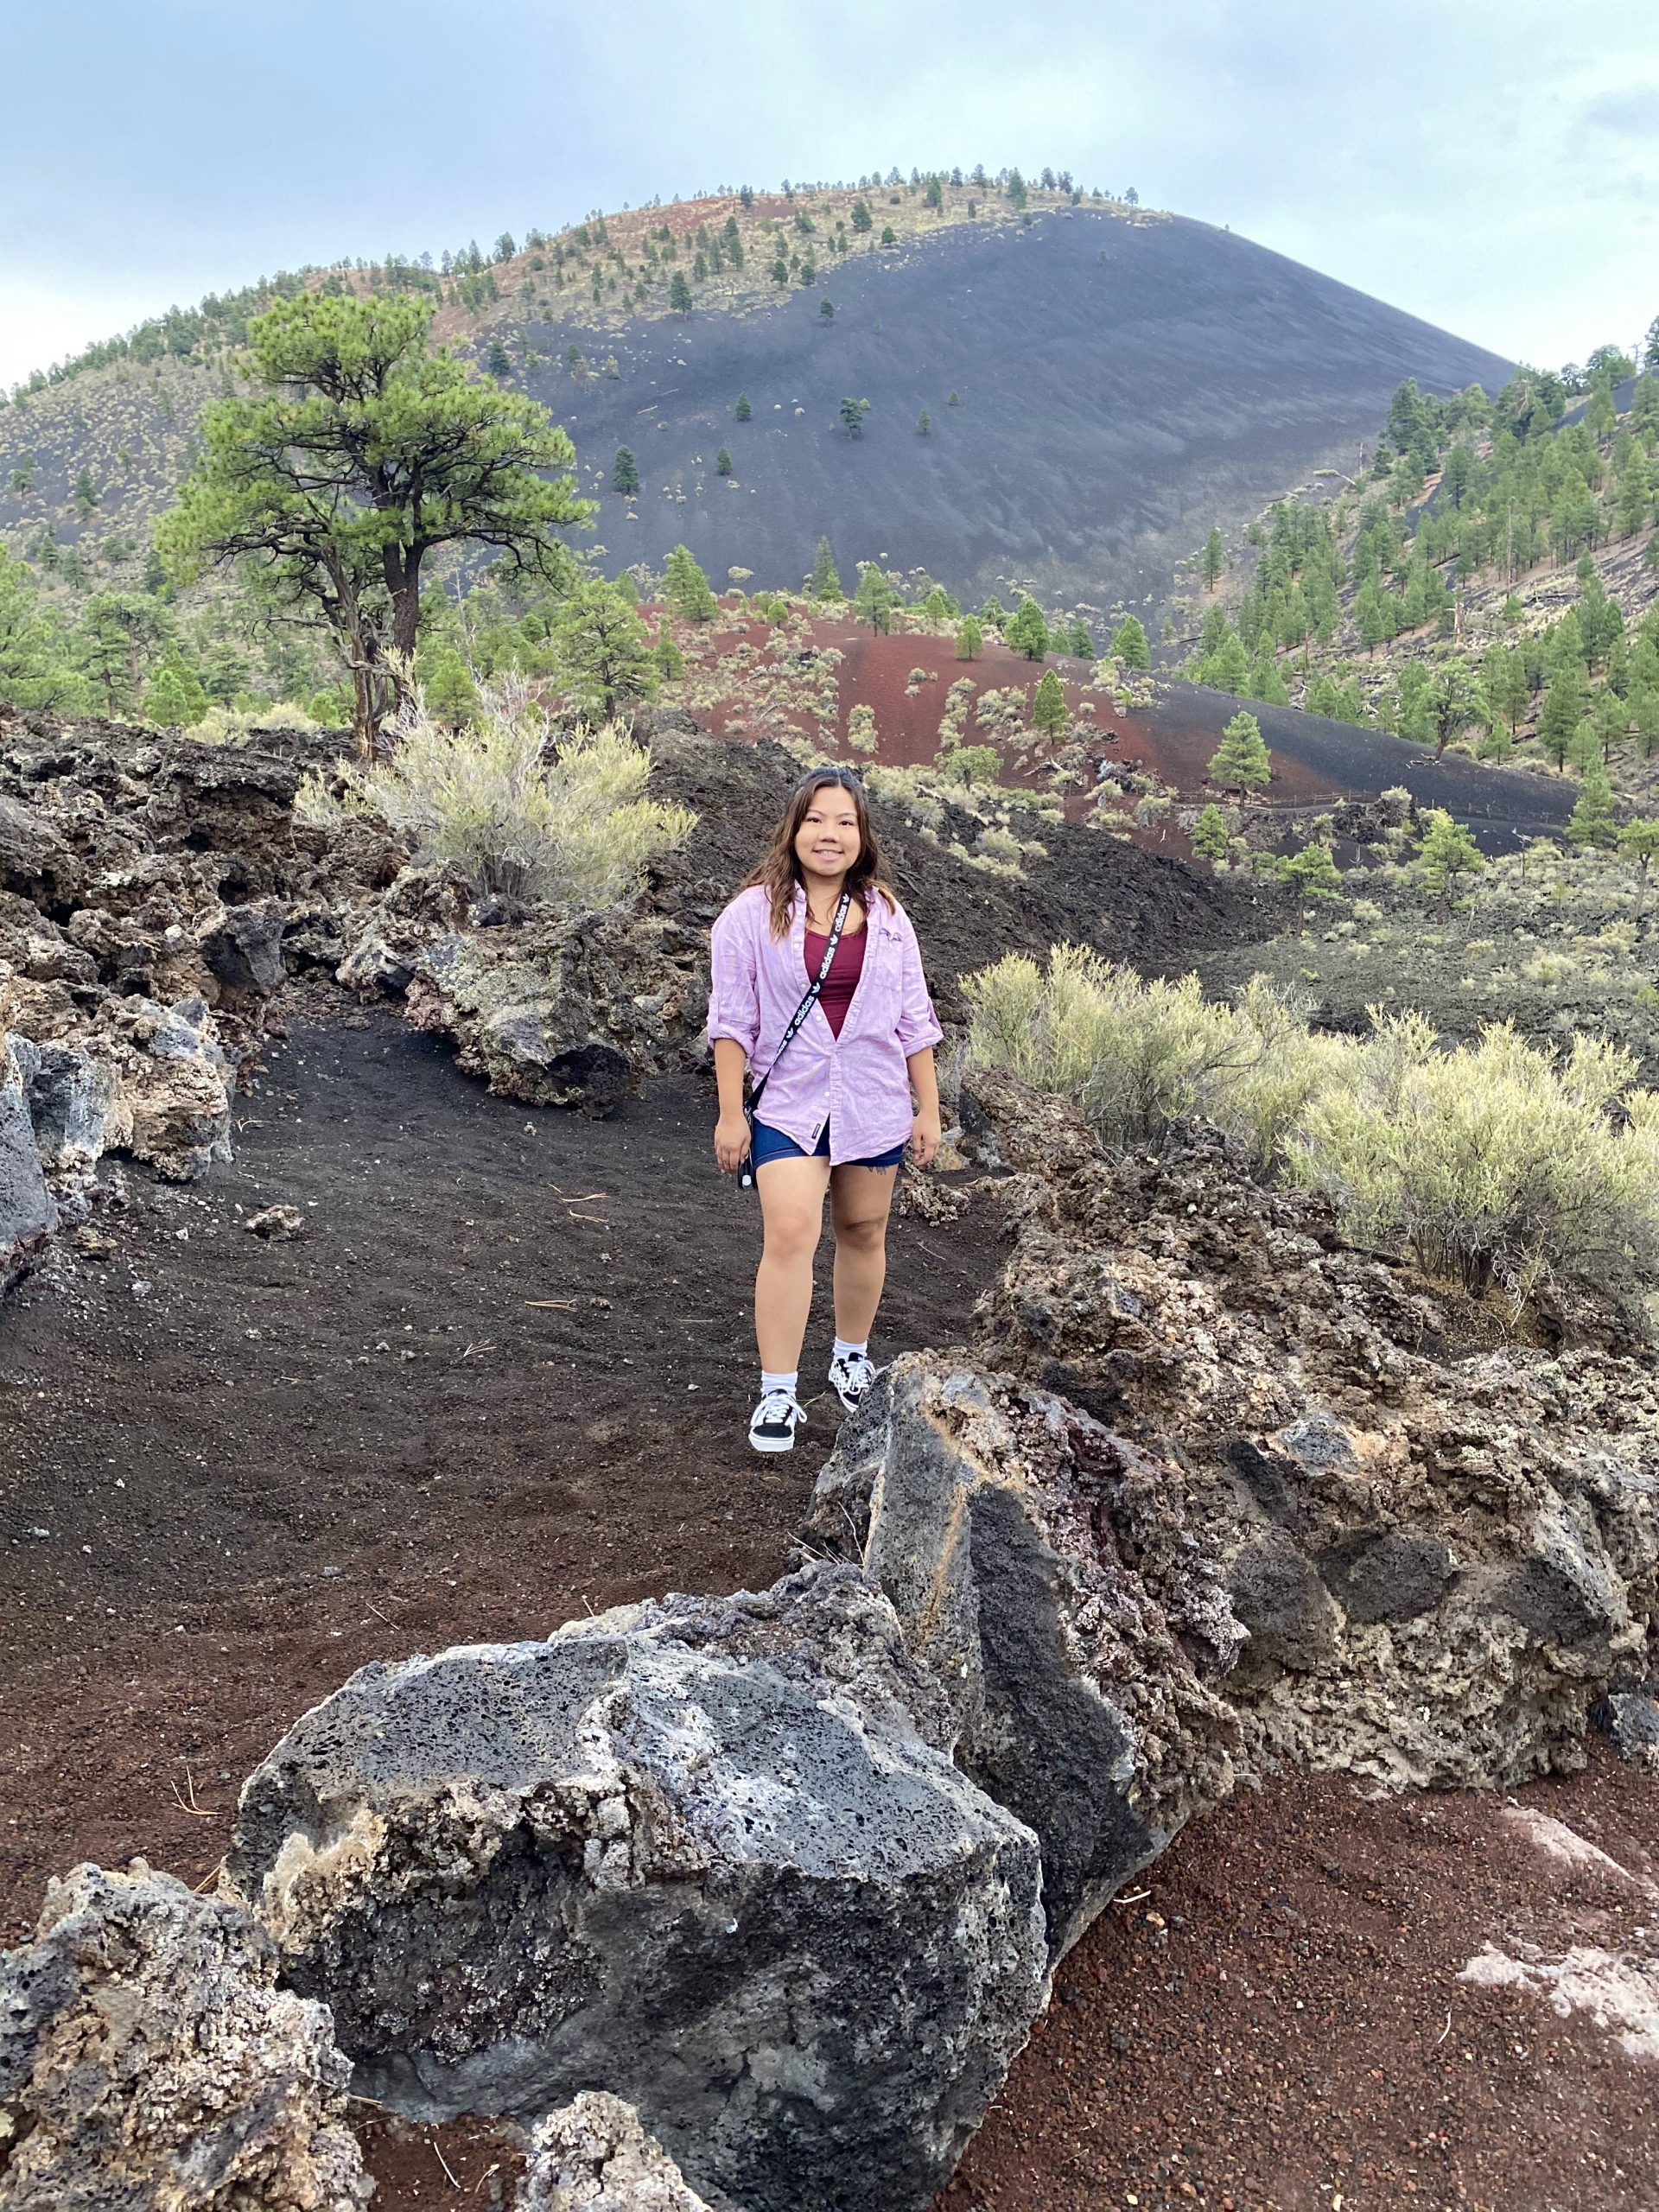 Sunset Crater Volcano National Monument: Lava Flow Trail